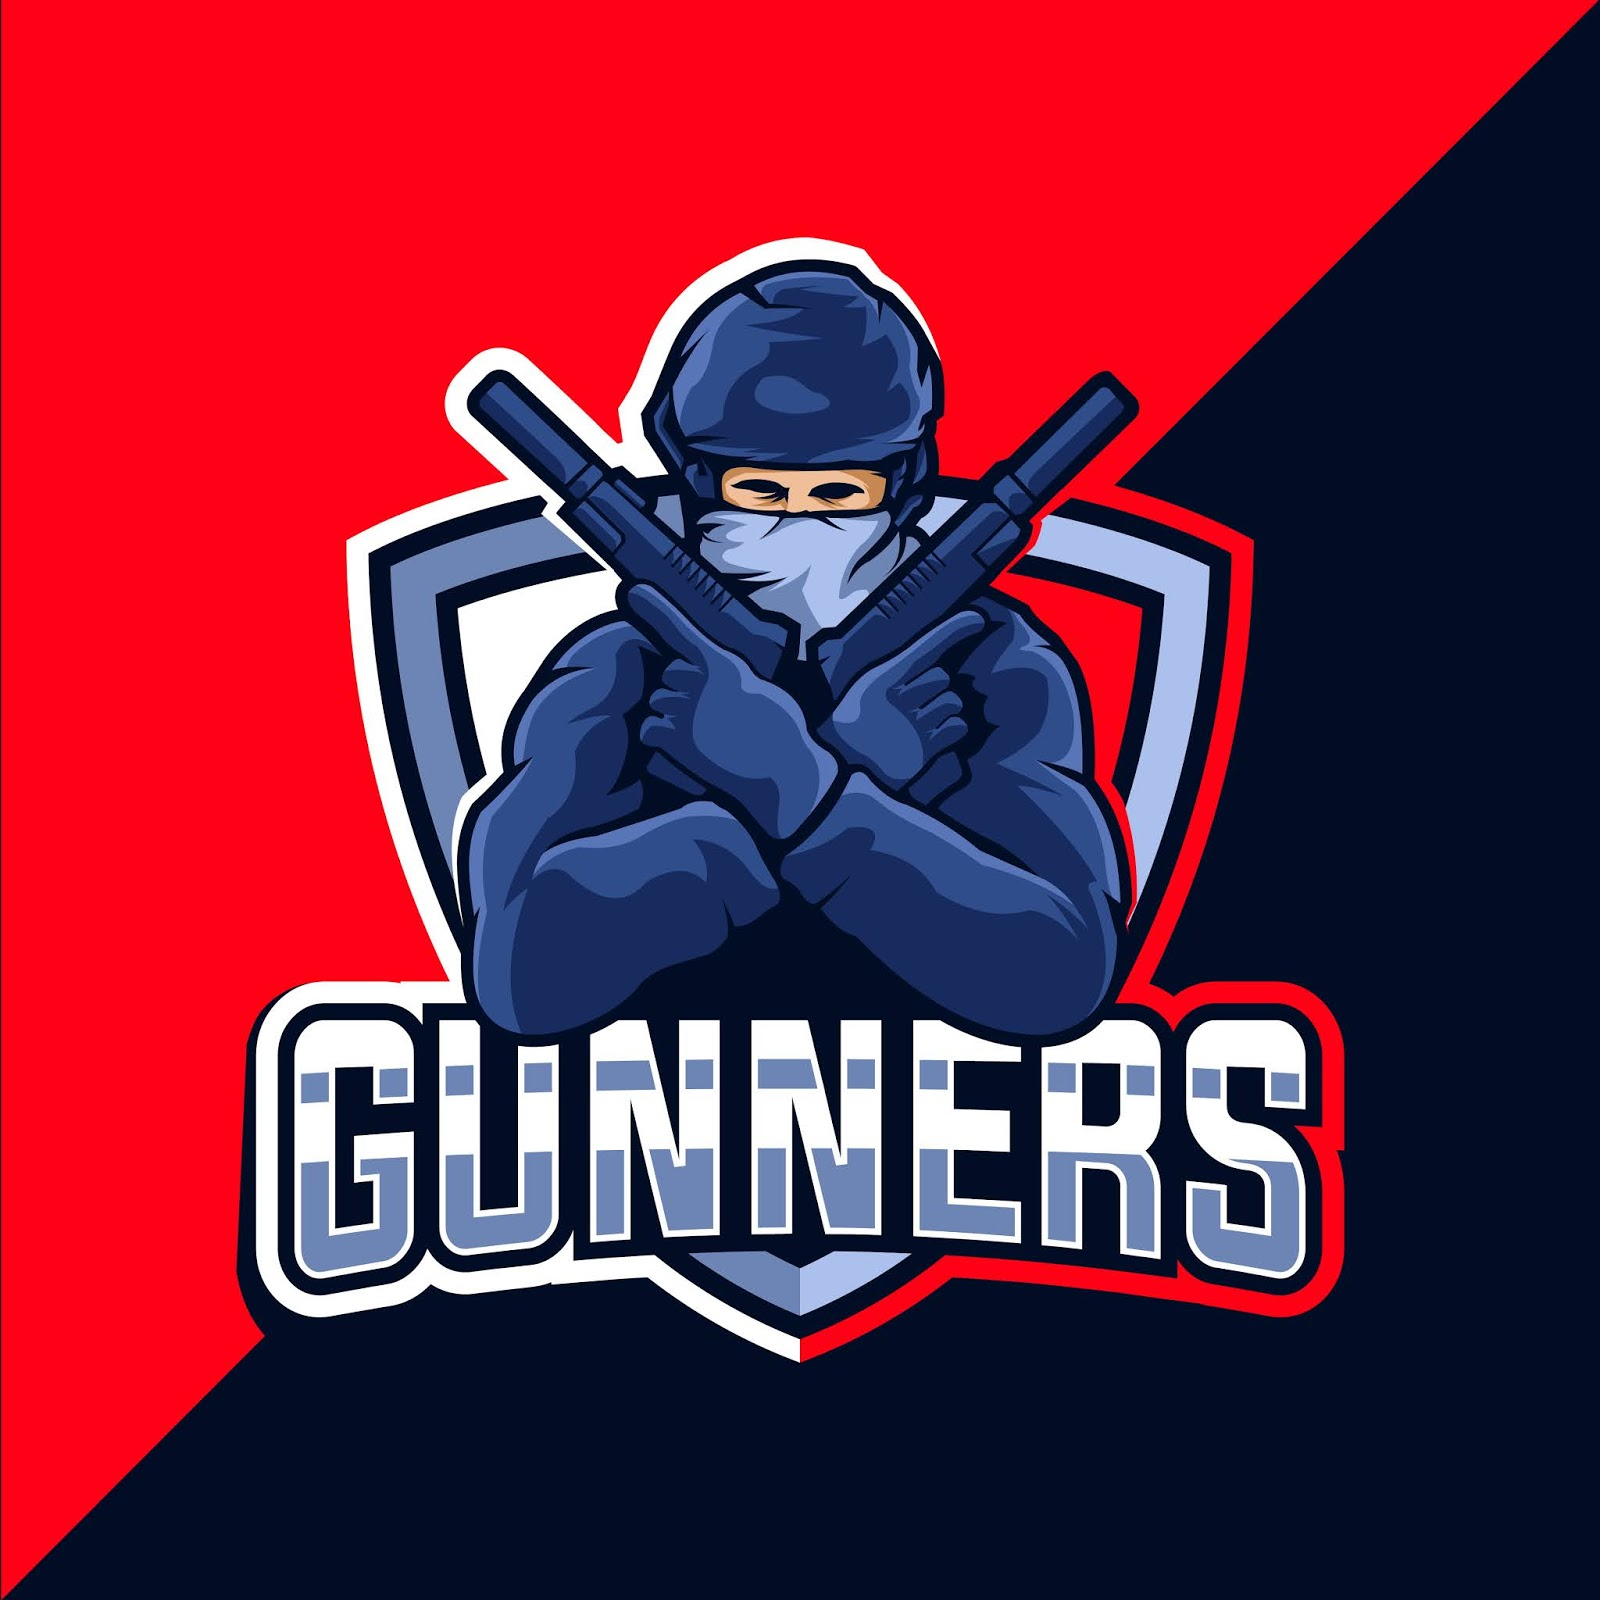 Gunner Esport Mascot Logo Design Free Download Vector CDR, AI, EPS and PNG Formats